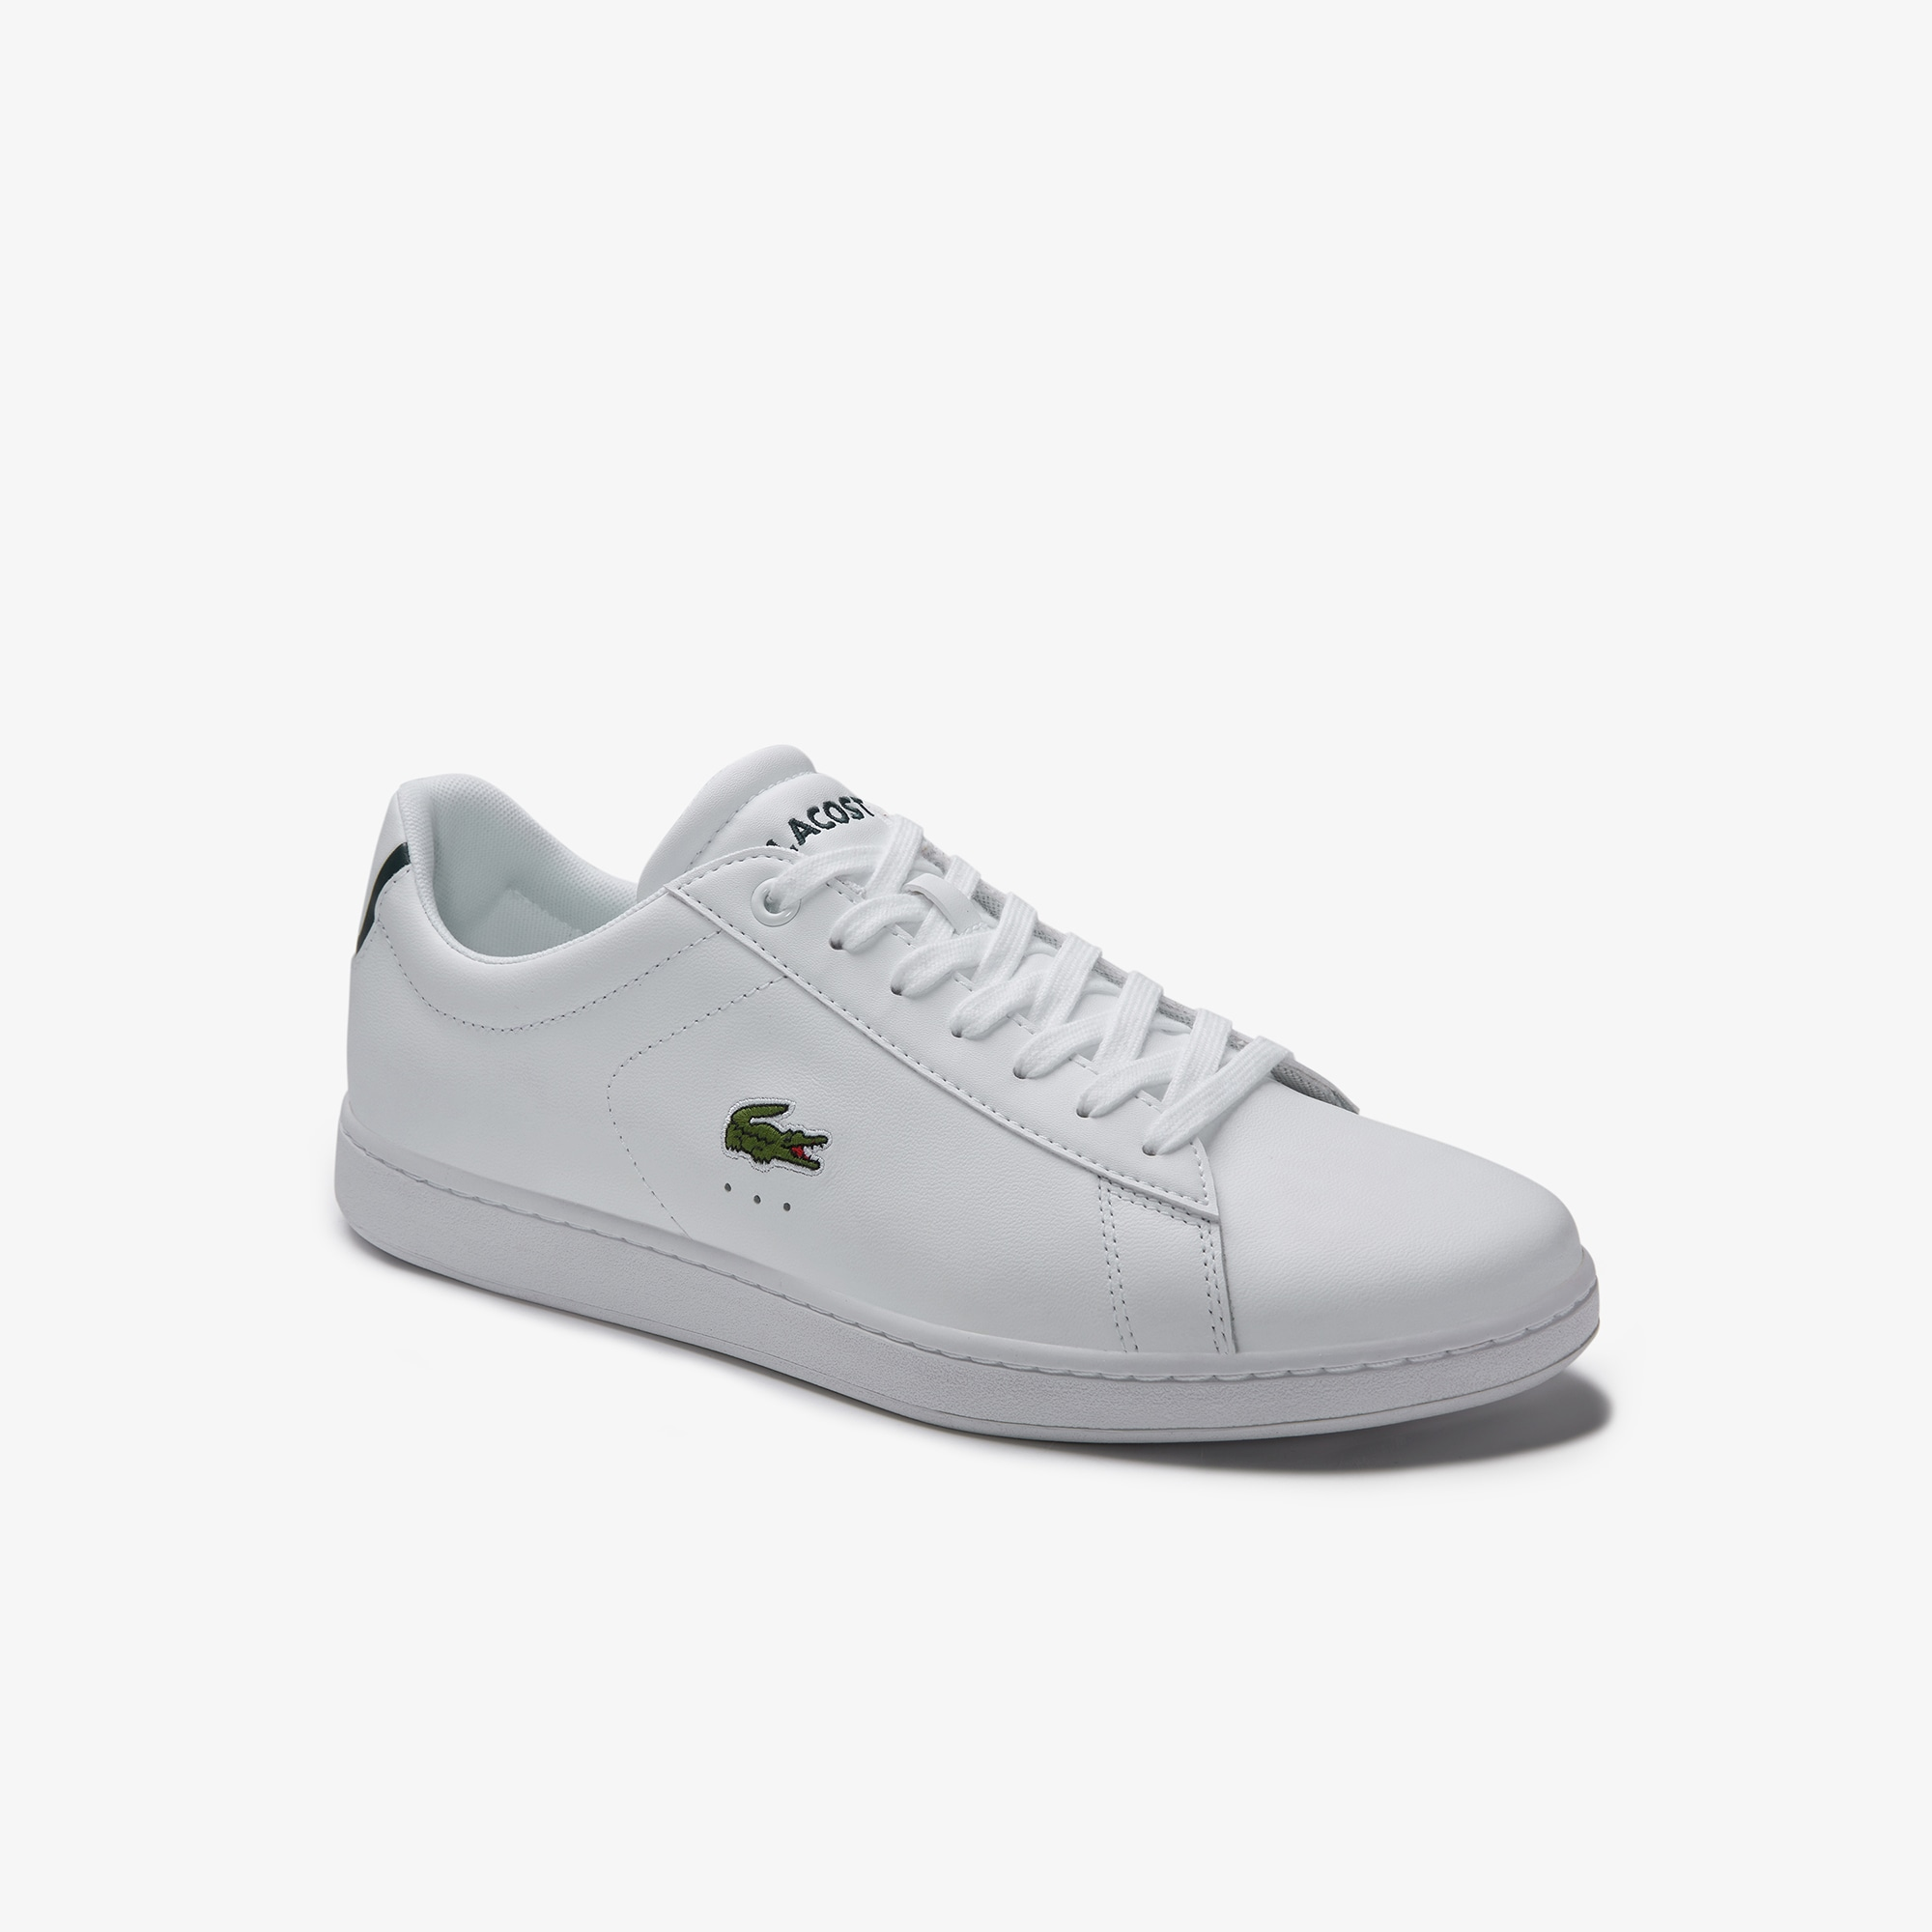 9c307a010 Lacoste shoes for men  Sneakers